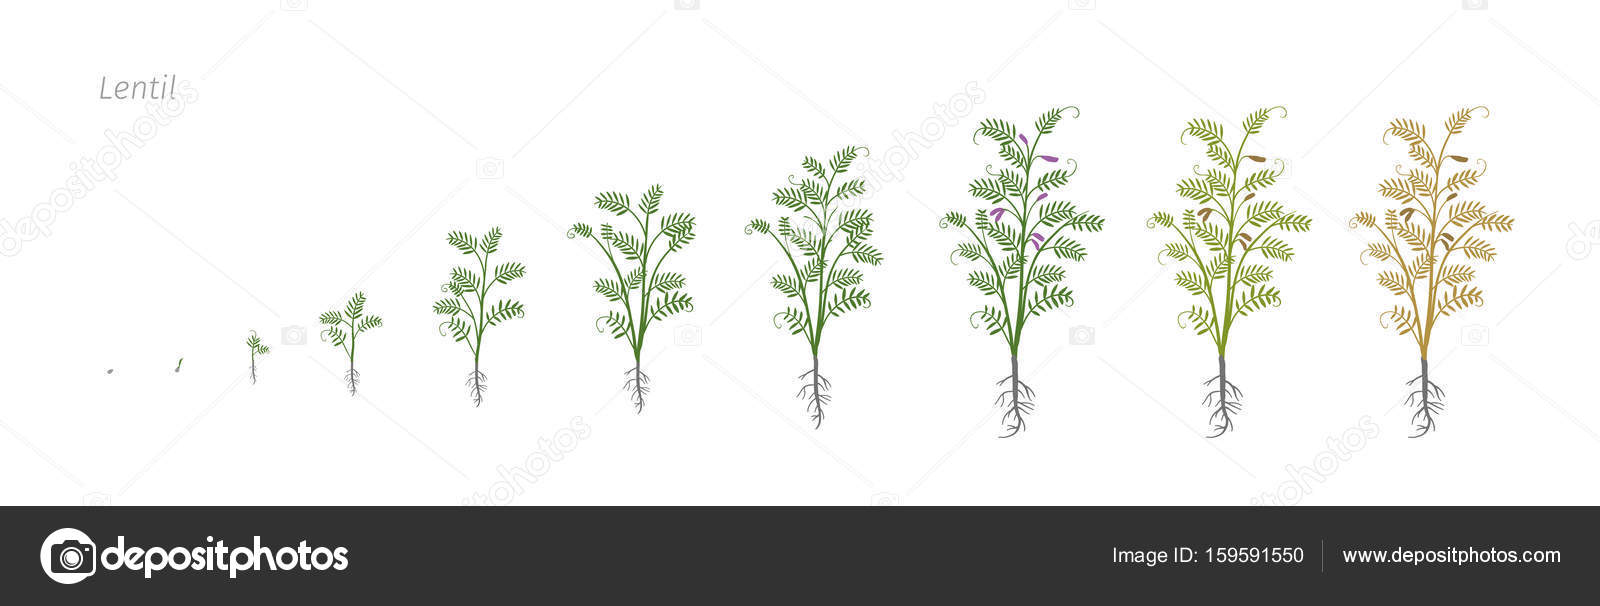 Lentil Soybean Lens culinaris Growth stages vector illustration